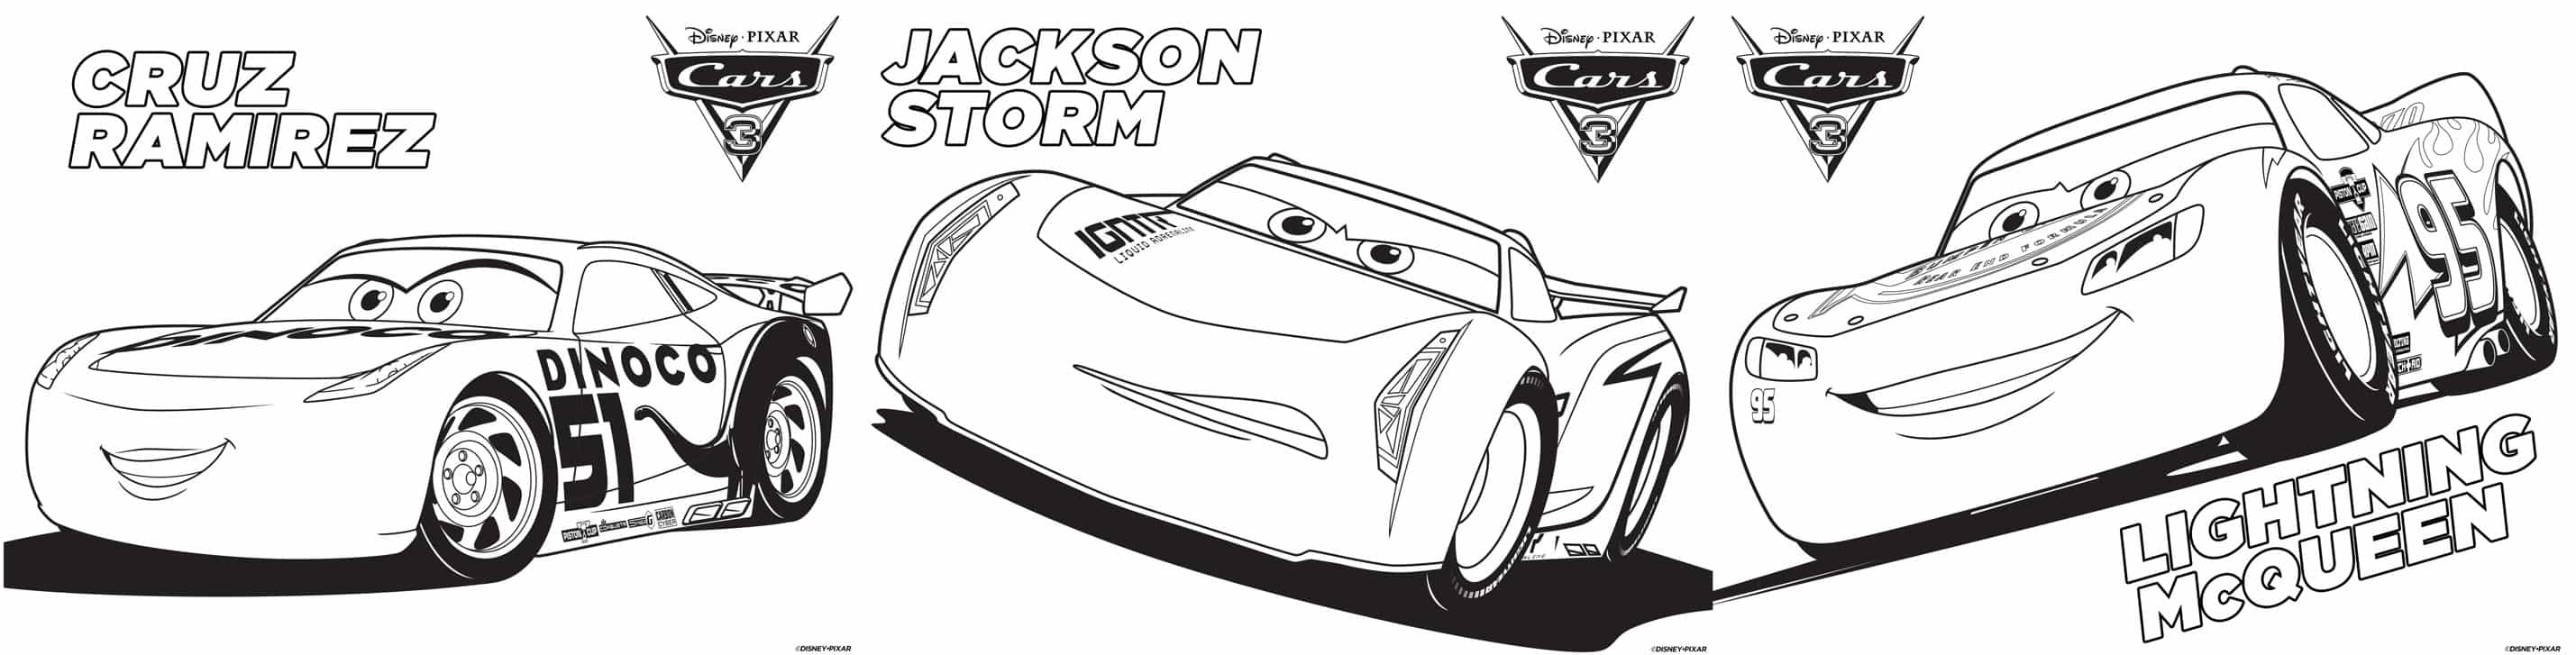 coloring pages jackson storm cruz ramirez lightening mcqueen